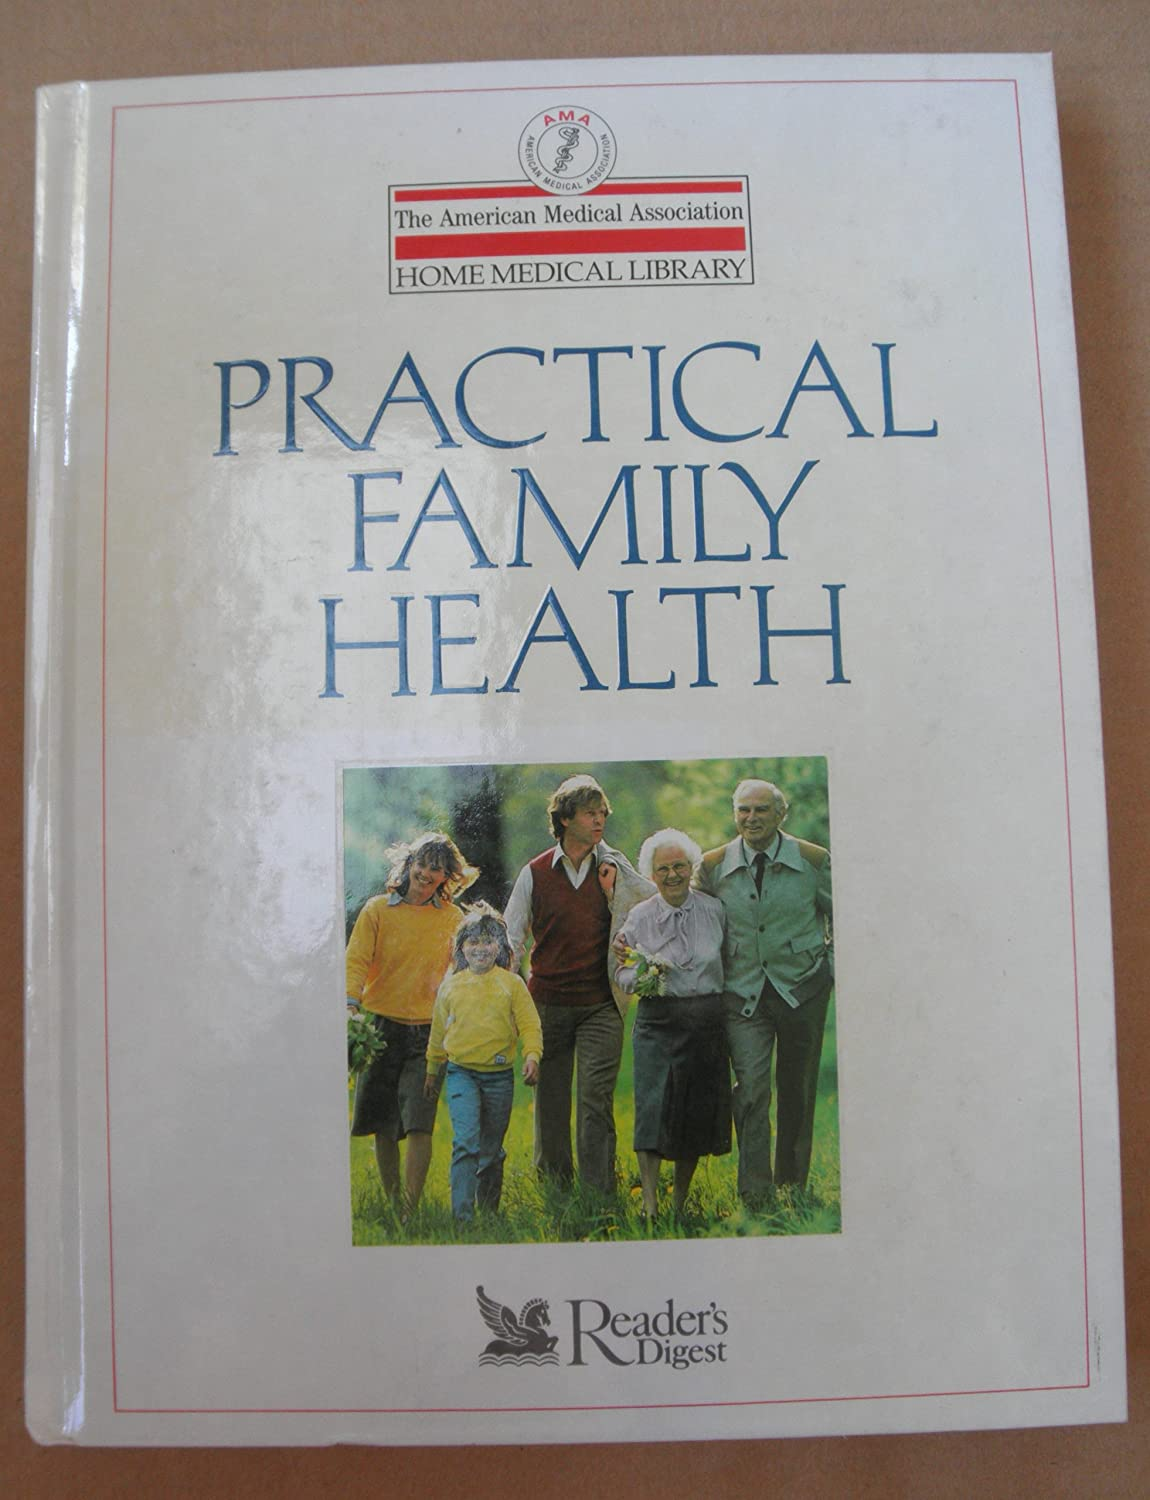 Reader's Digest: Practical Family Health by The American Medical Association Home Medical Library - Hardcover - Copyright 1989